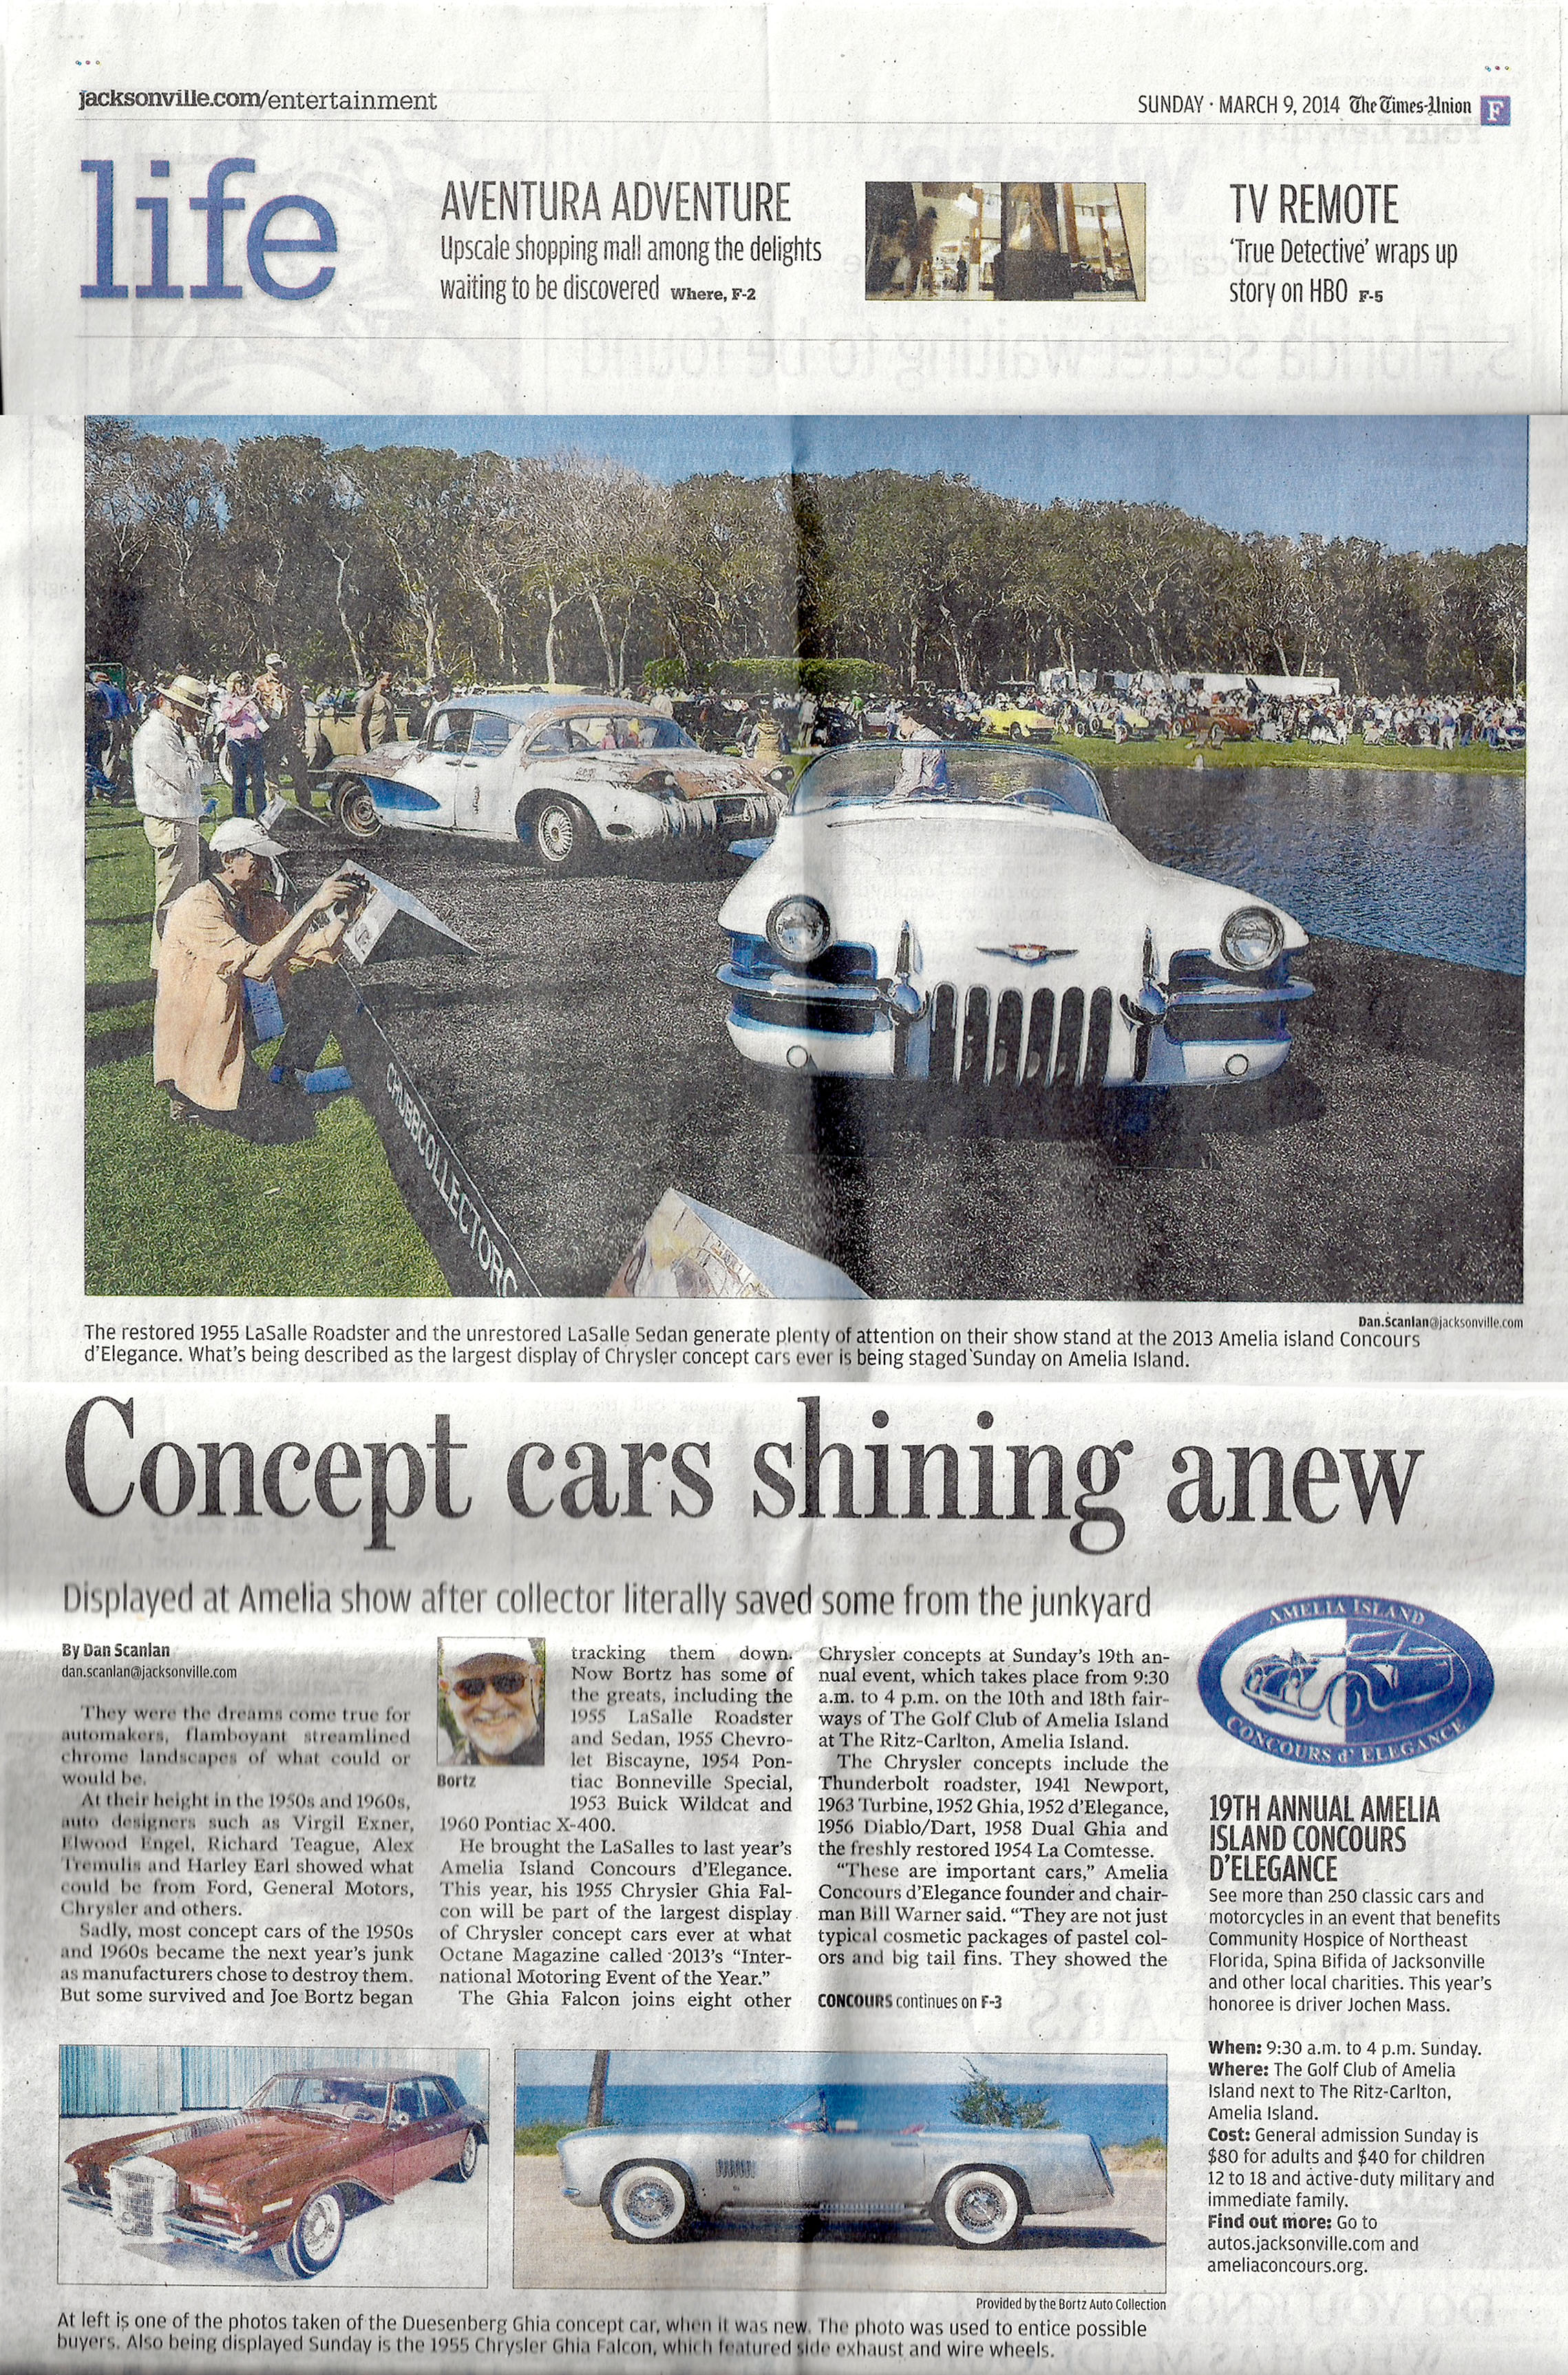 Concept Cars Shining Anew by Dan Scanlan, Jacksonville News